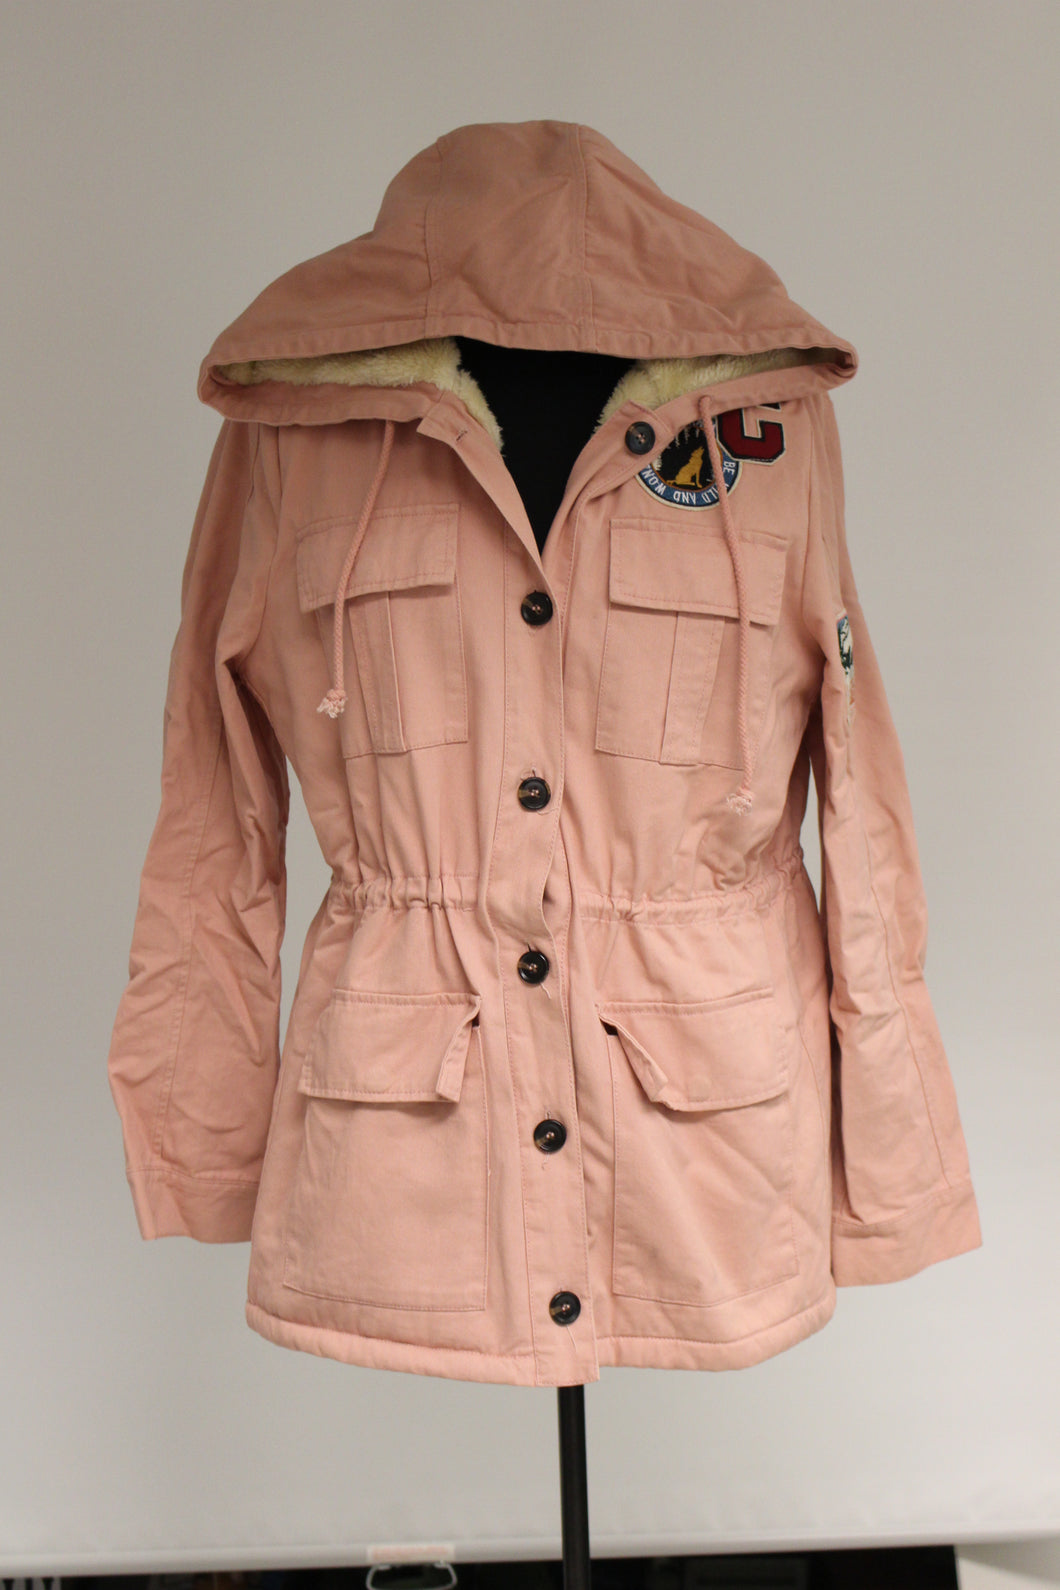 Iris Ladies Winter Coat, CA Be Wild & Wonder Patch, Mountain Saving Wildlife Patch, Large, Dusty Pink